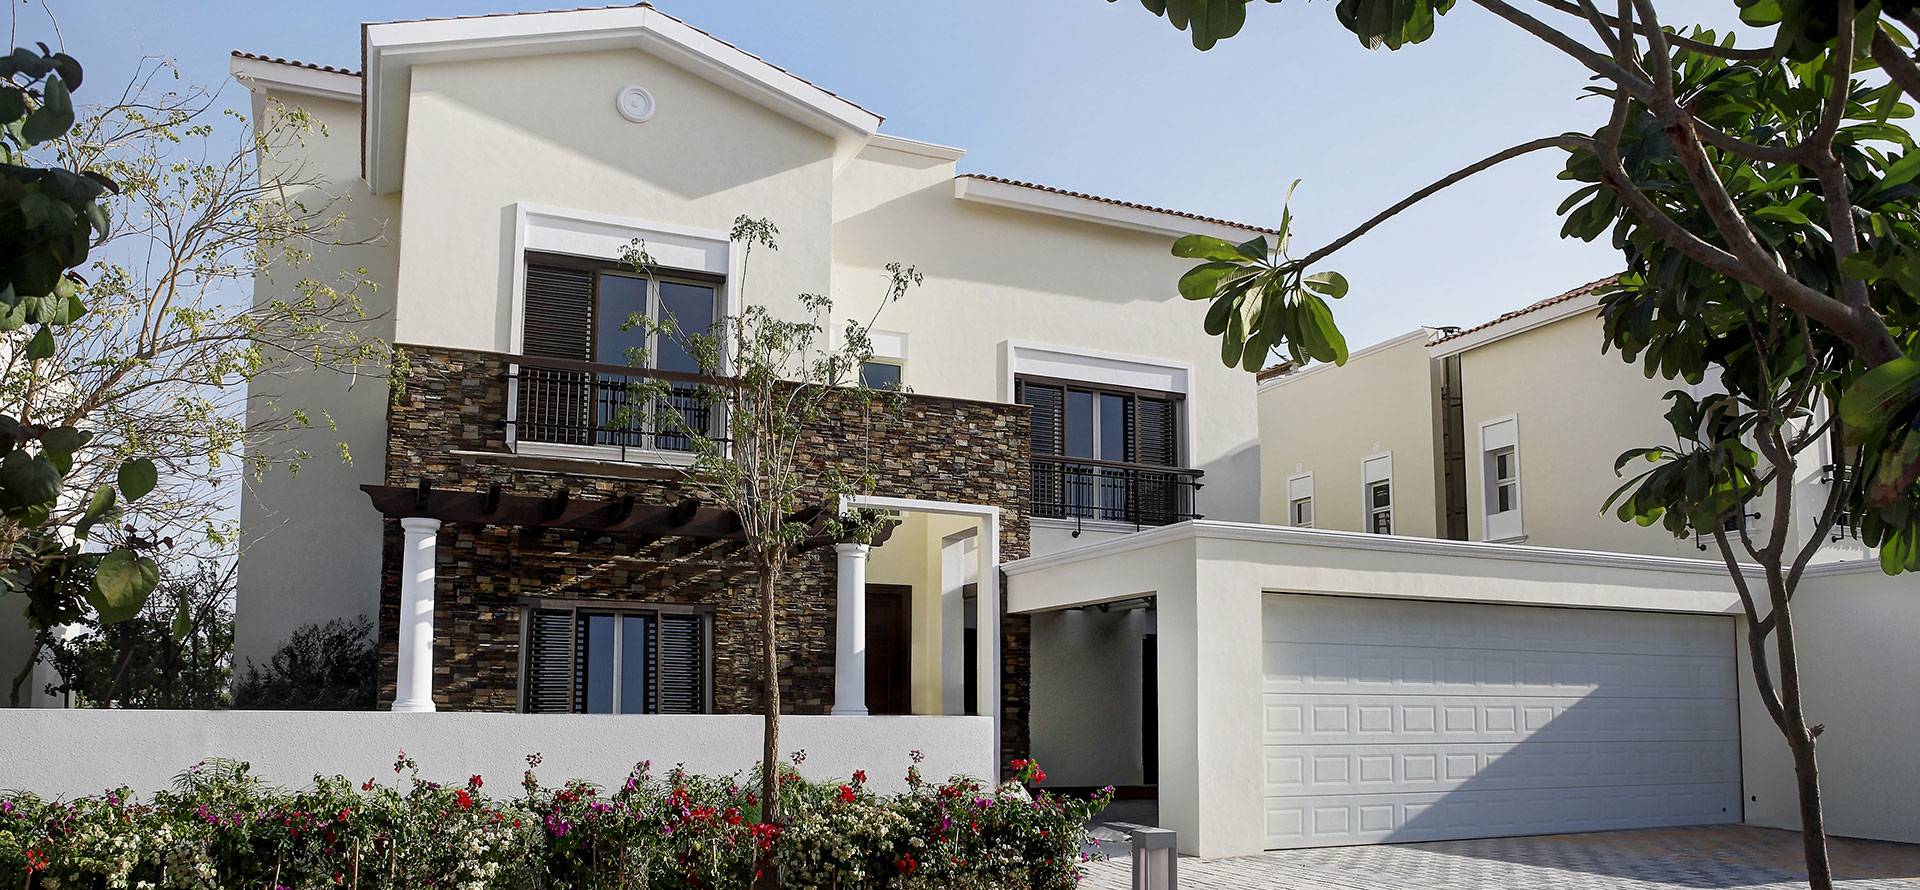 Mediterranean Villas in Meydan District One